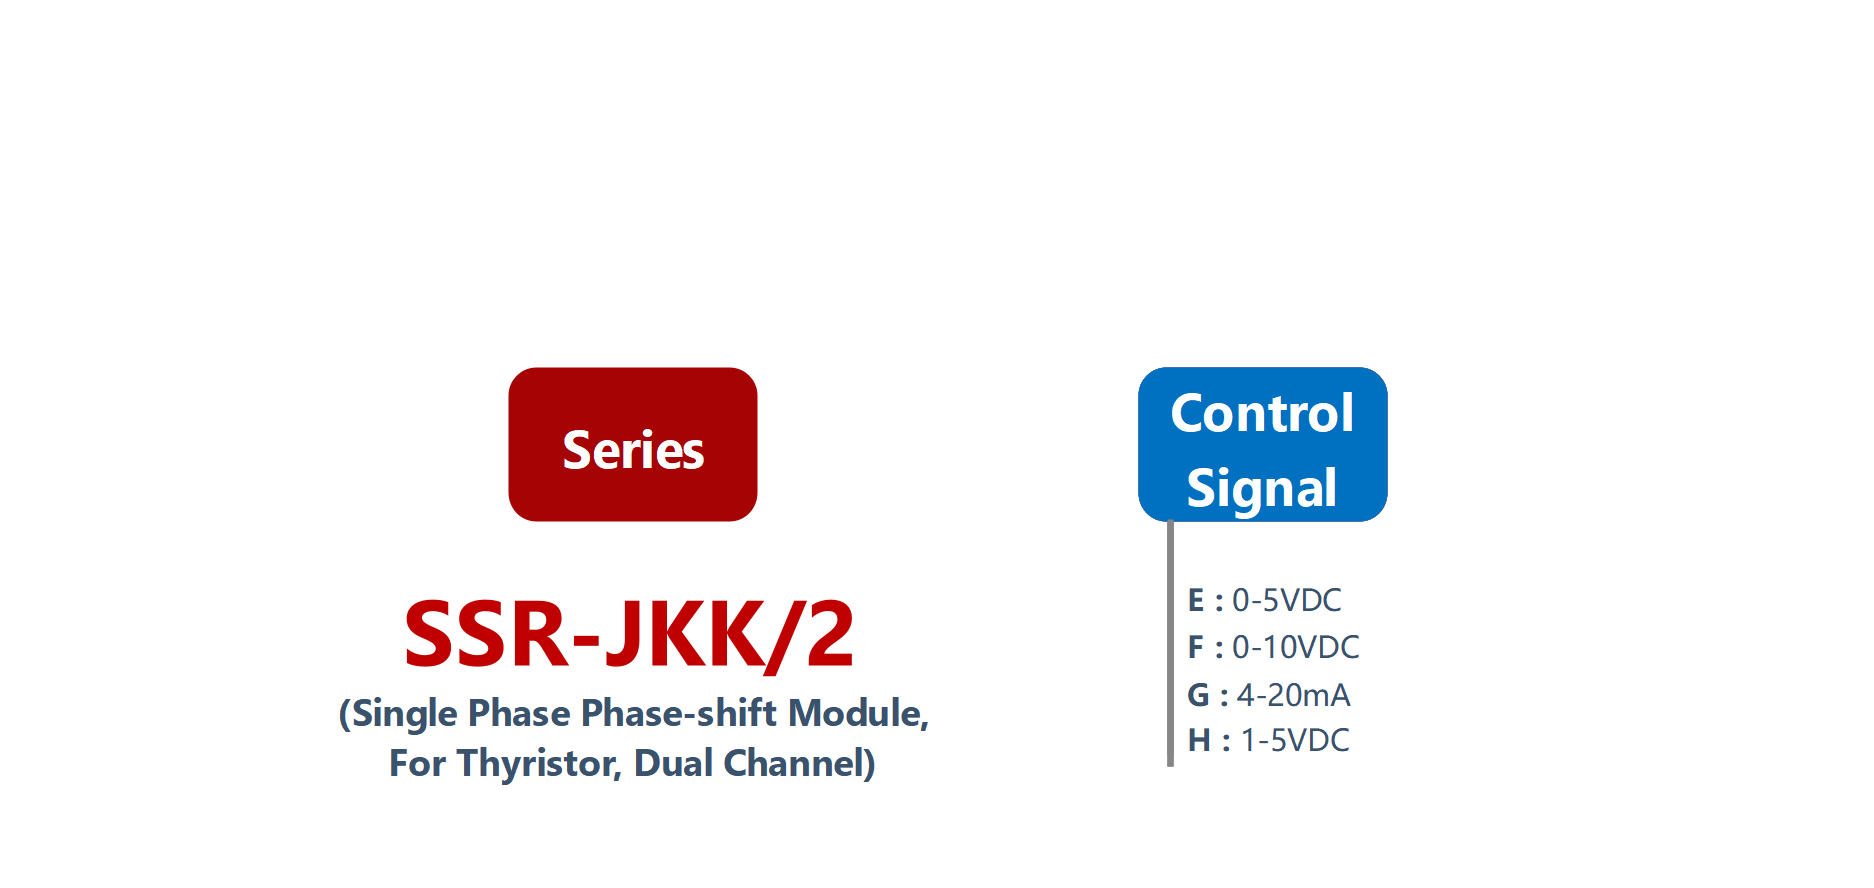 How to order SCR-JKK/2 Series Voltage Power Regulator